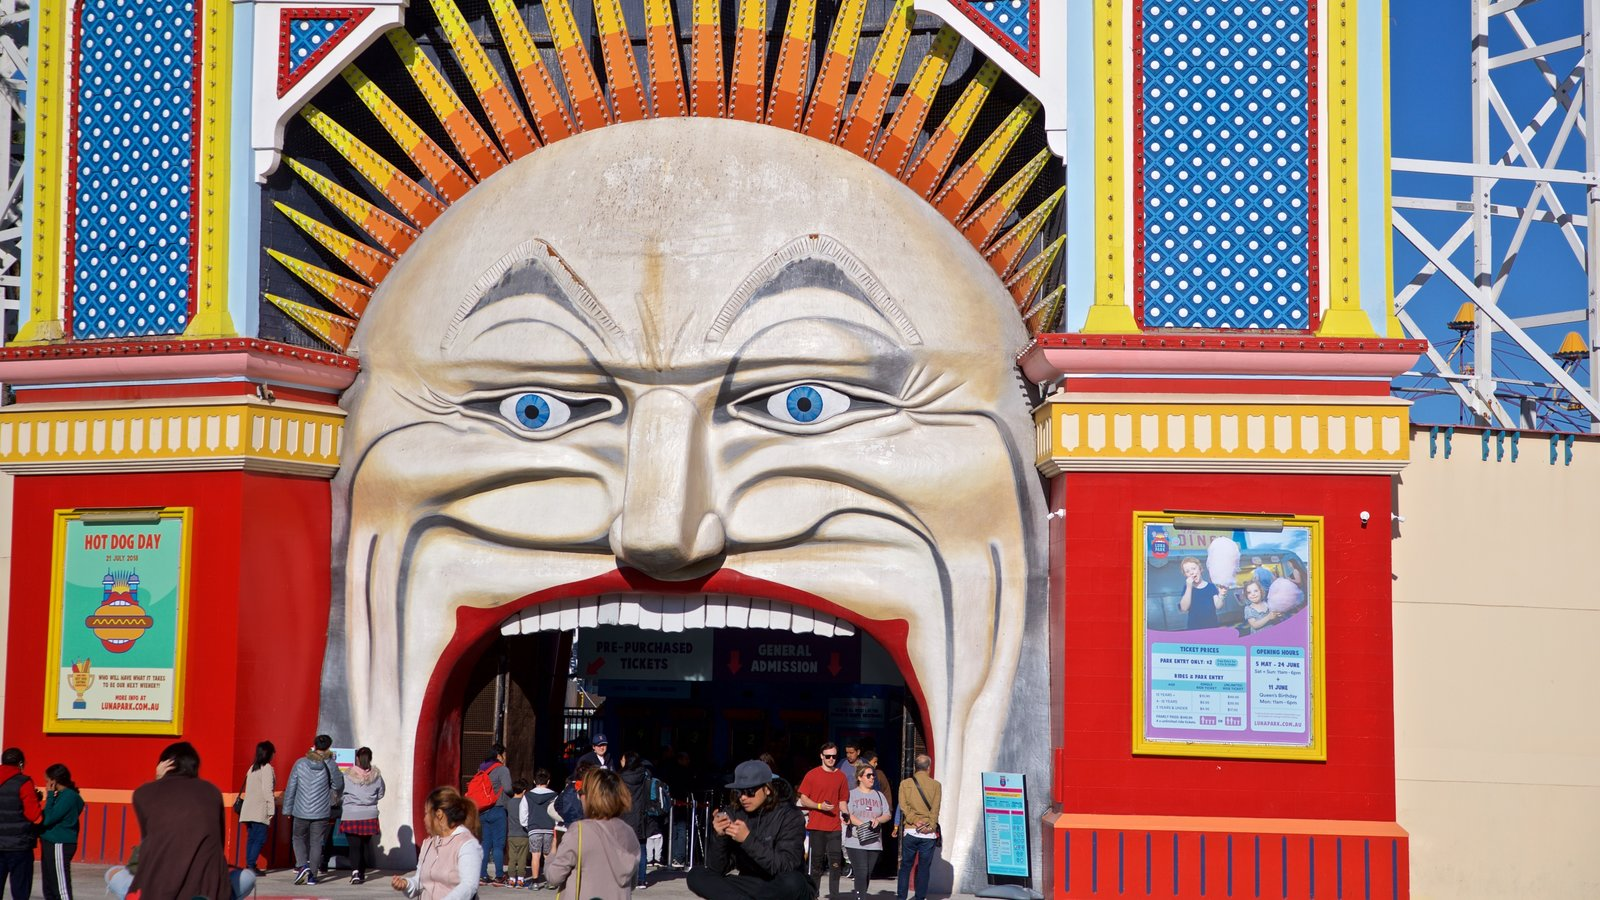 Luna Park showing outdoor art, signage and rides